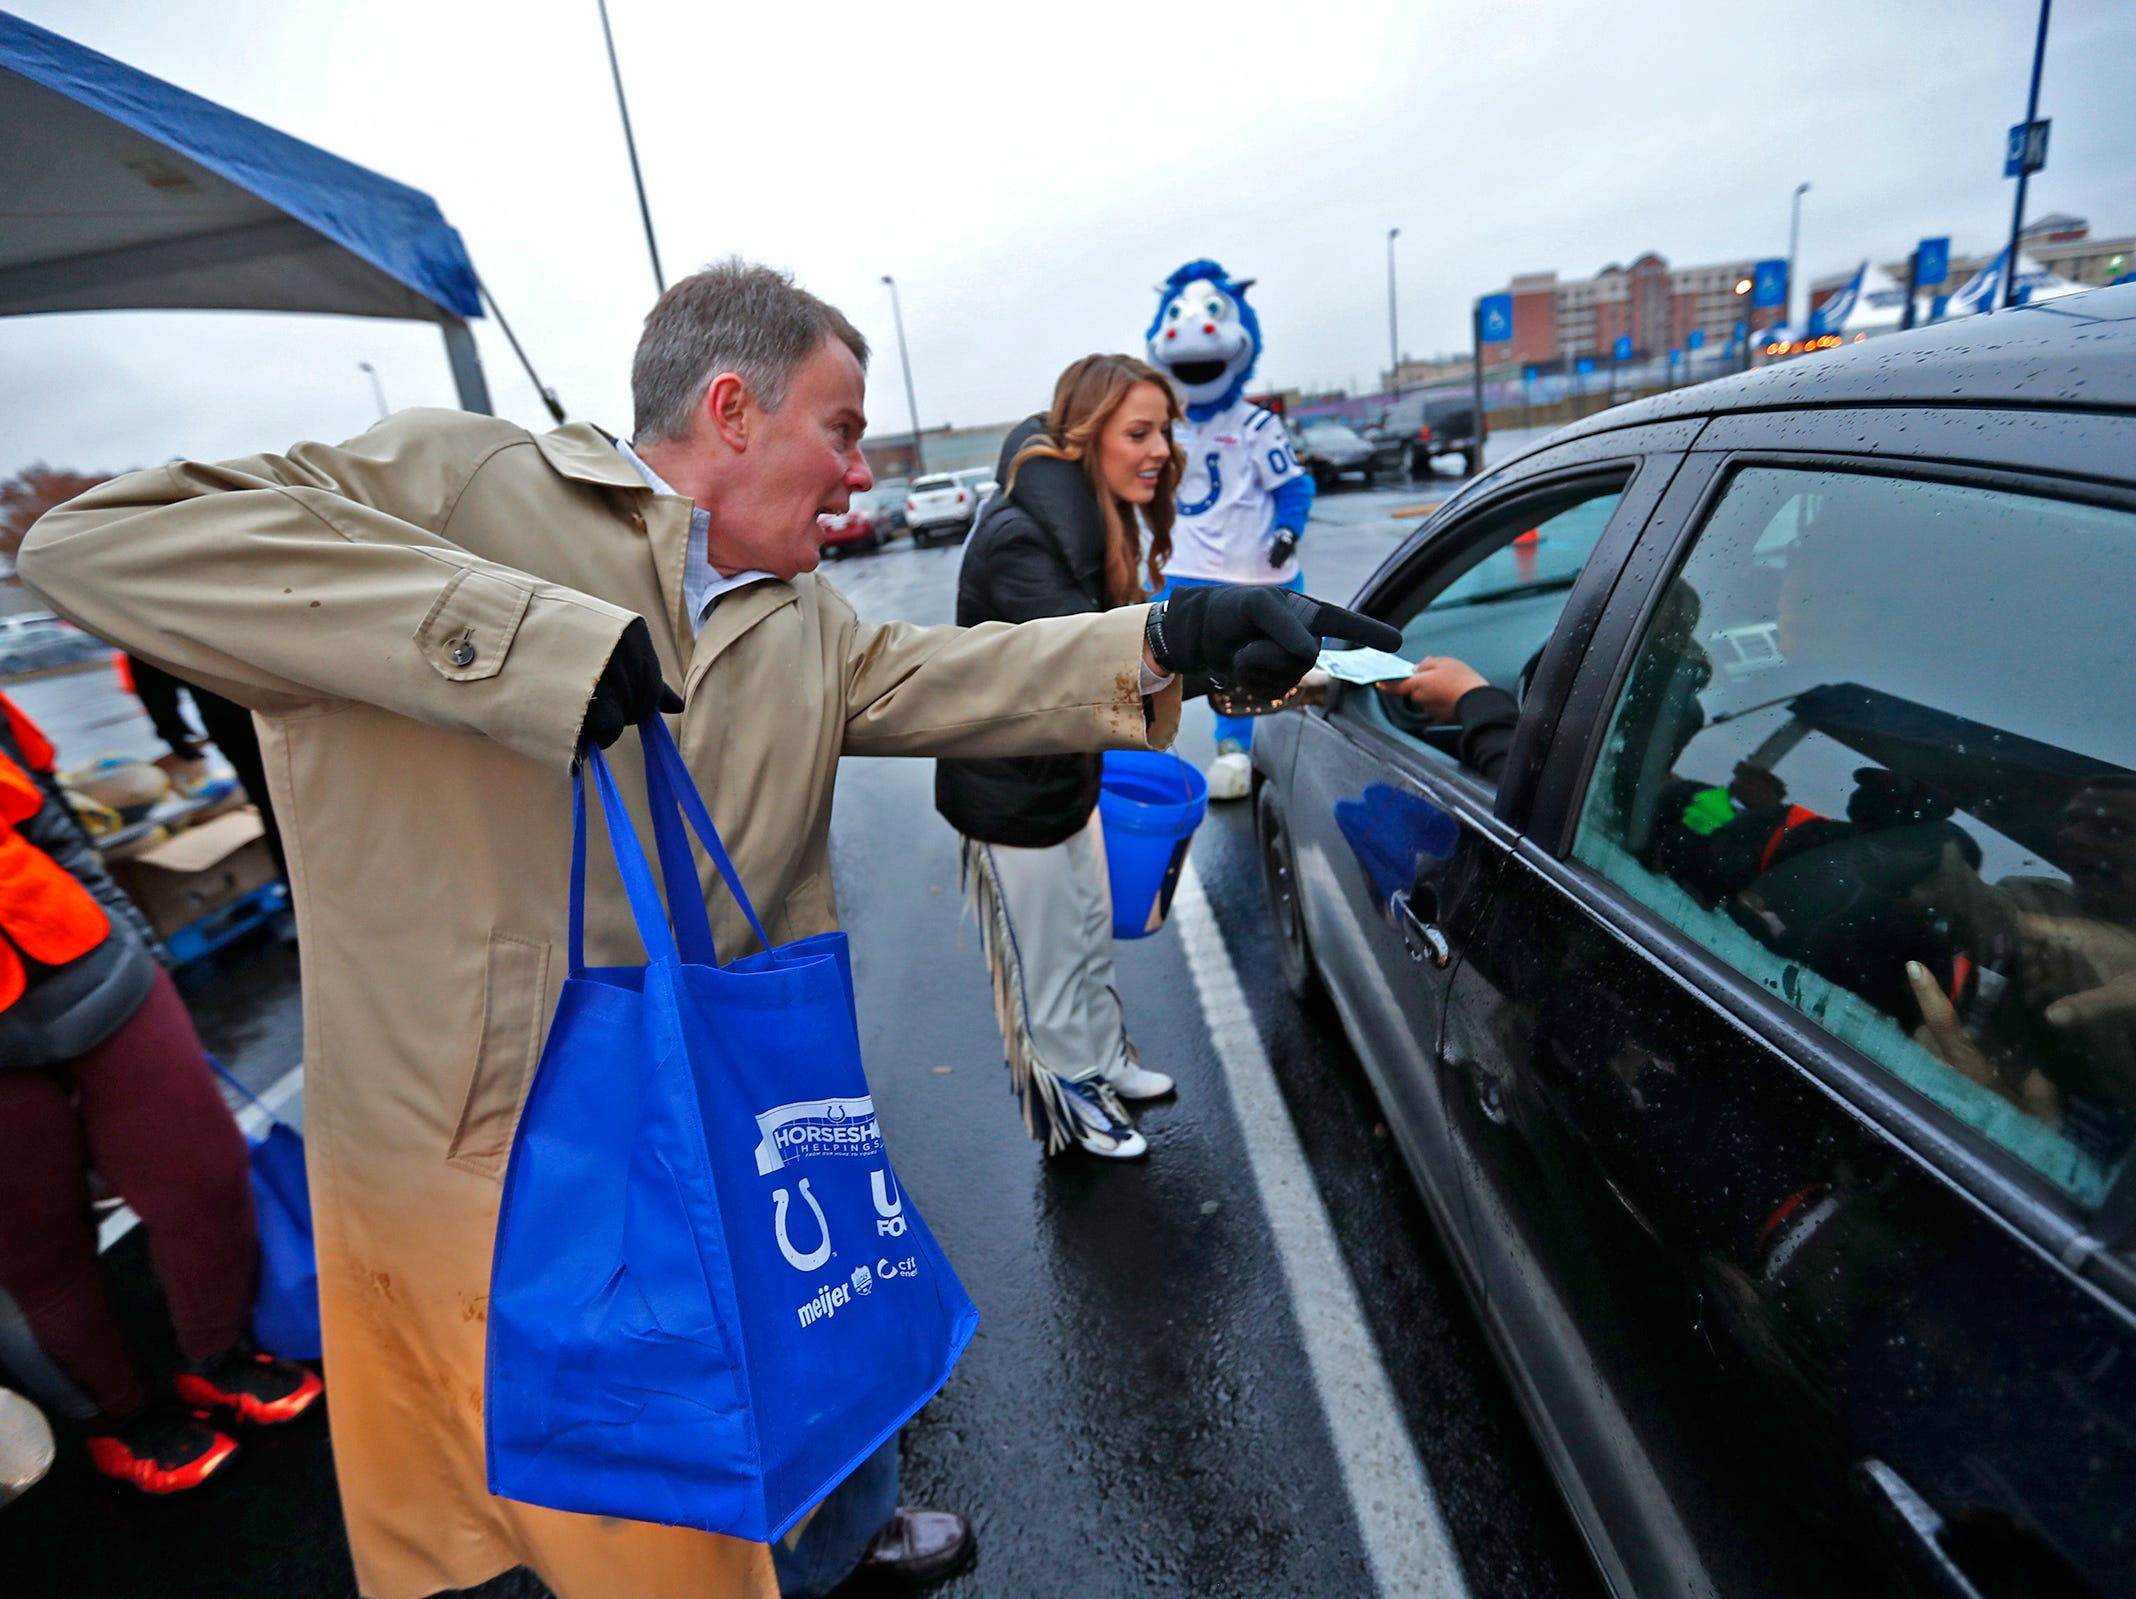 Mayor Joe Hogsett helps to distribute Thanksgiving meals to families at Lucas Oil Stadium, Monday, Nov. 19, 2018.